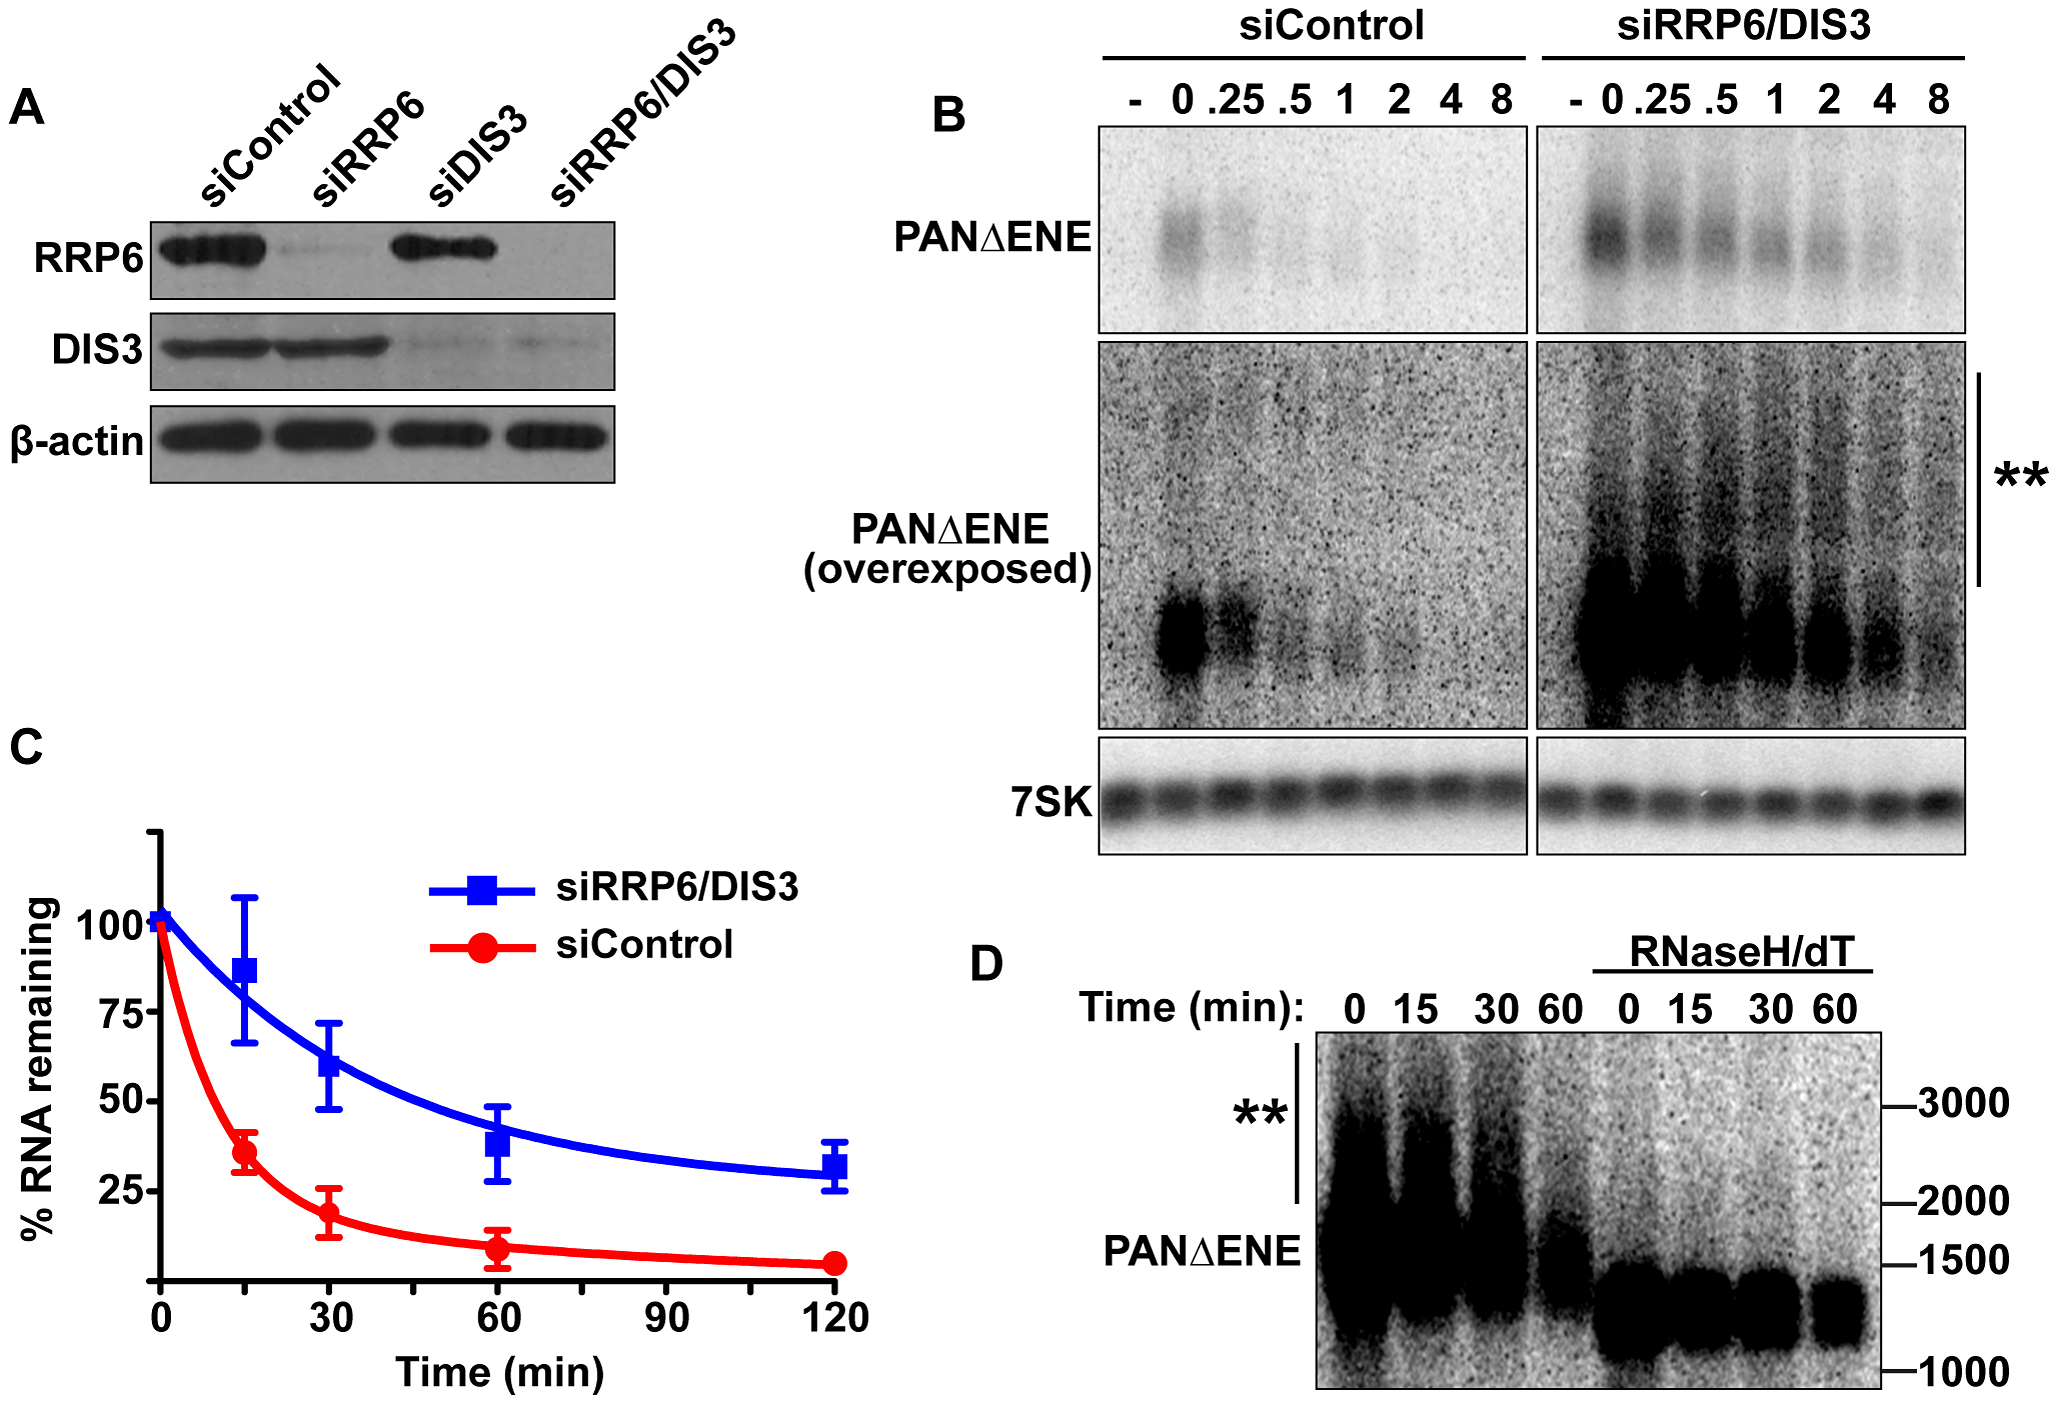 PANΔENE is stabilized and hyperadenylated upon exosome depletion.